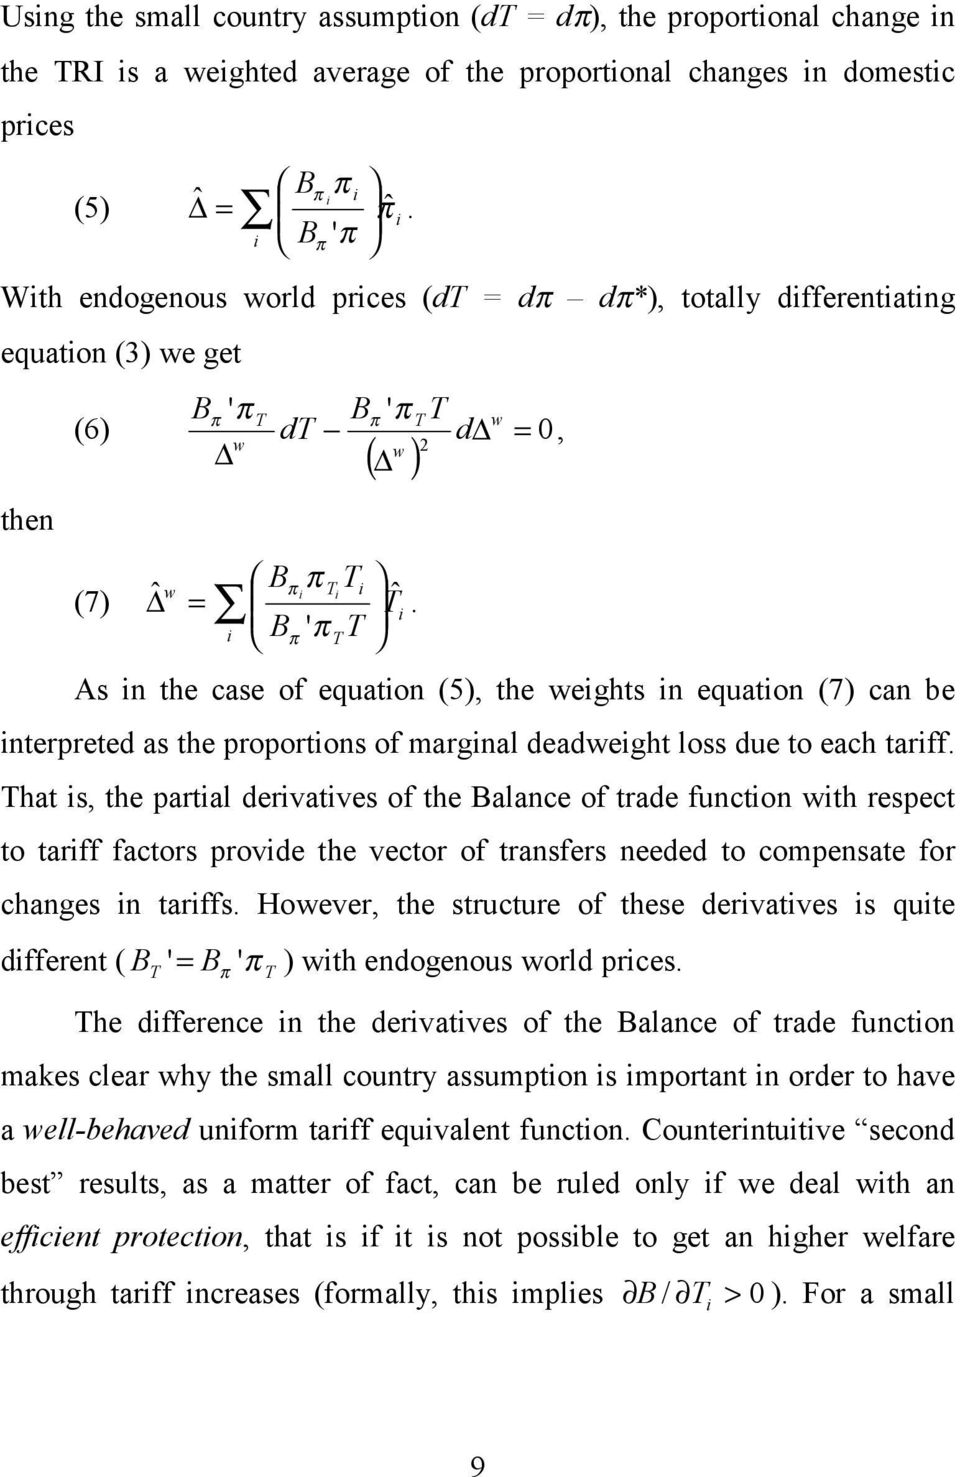 π π As in the case of equation (5), the weights in equation (7) can be interpreted as the proportions of marginal deadweight loss due to each tariff.